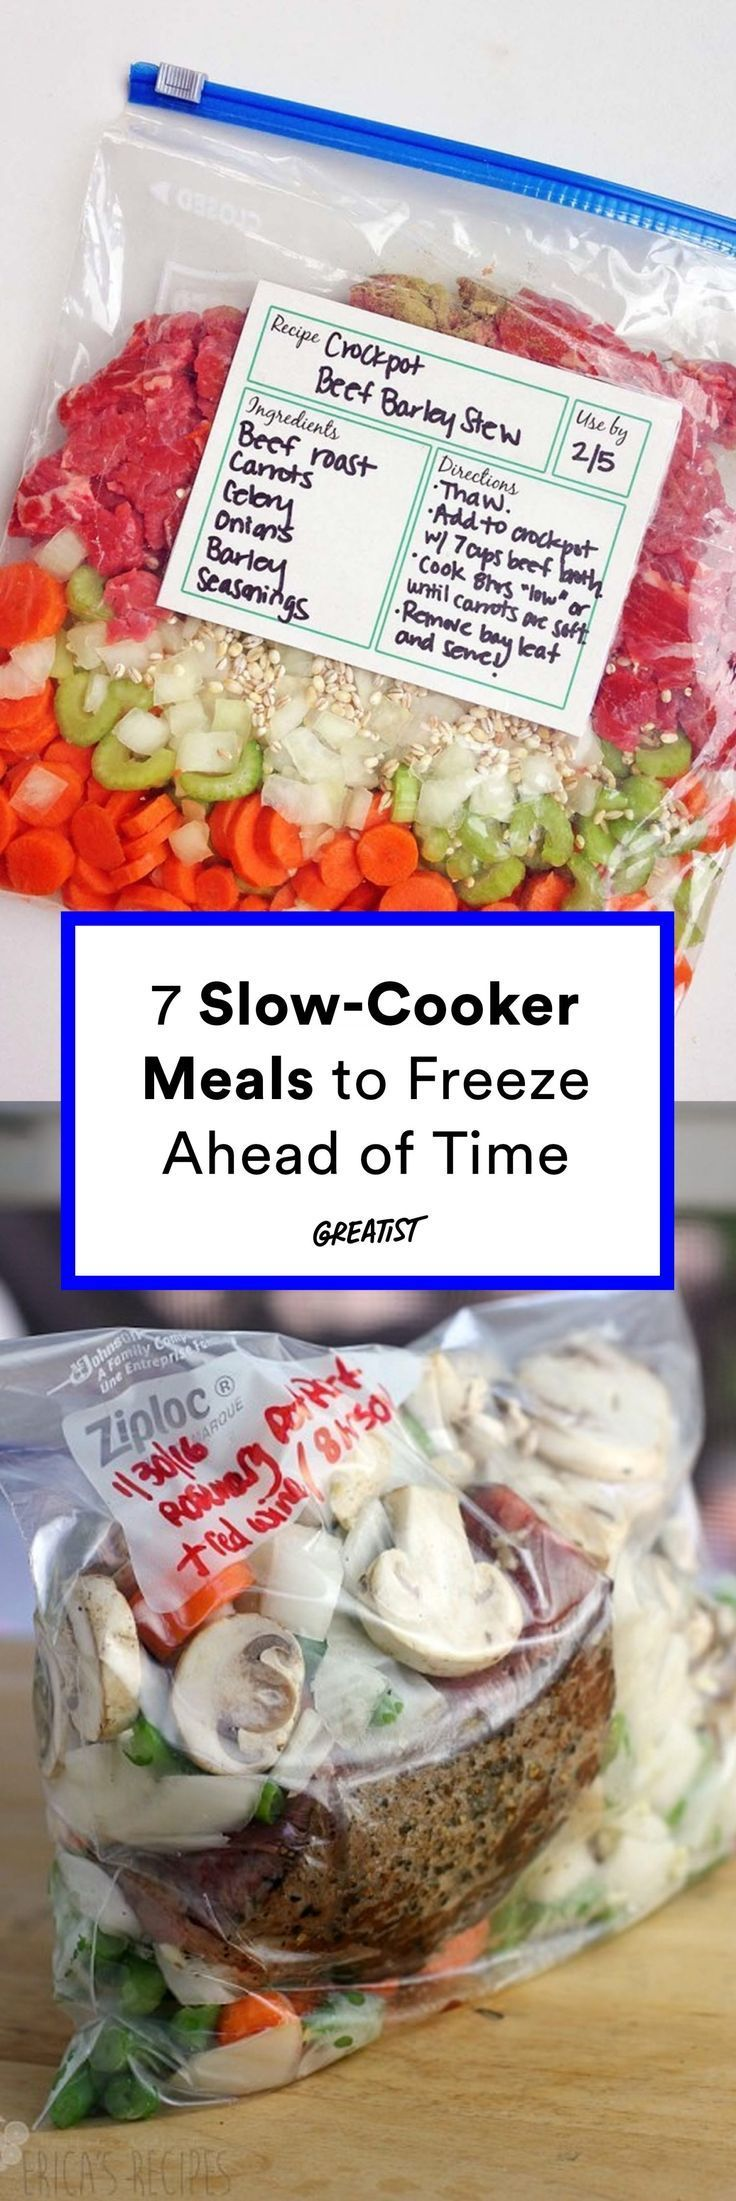 7 Slow-Cooker Dinners You Can Make and Freeze Ahead of Time images